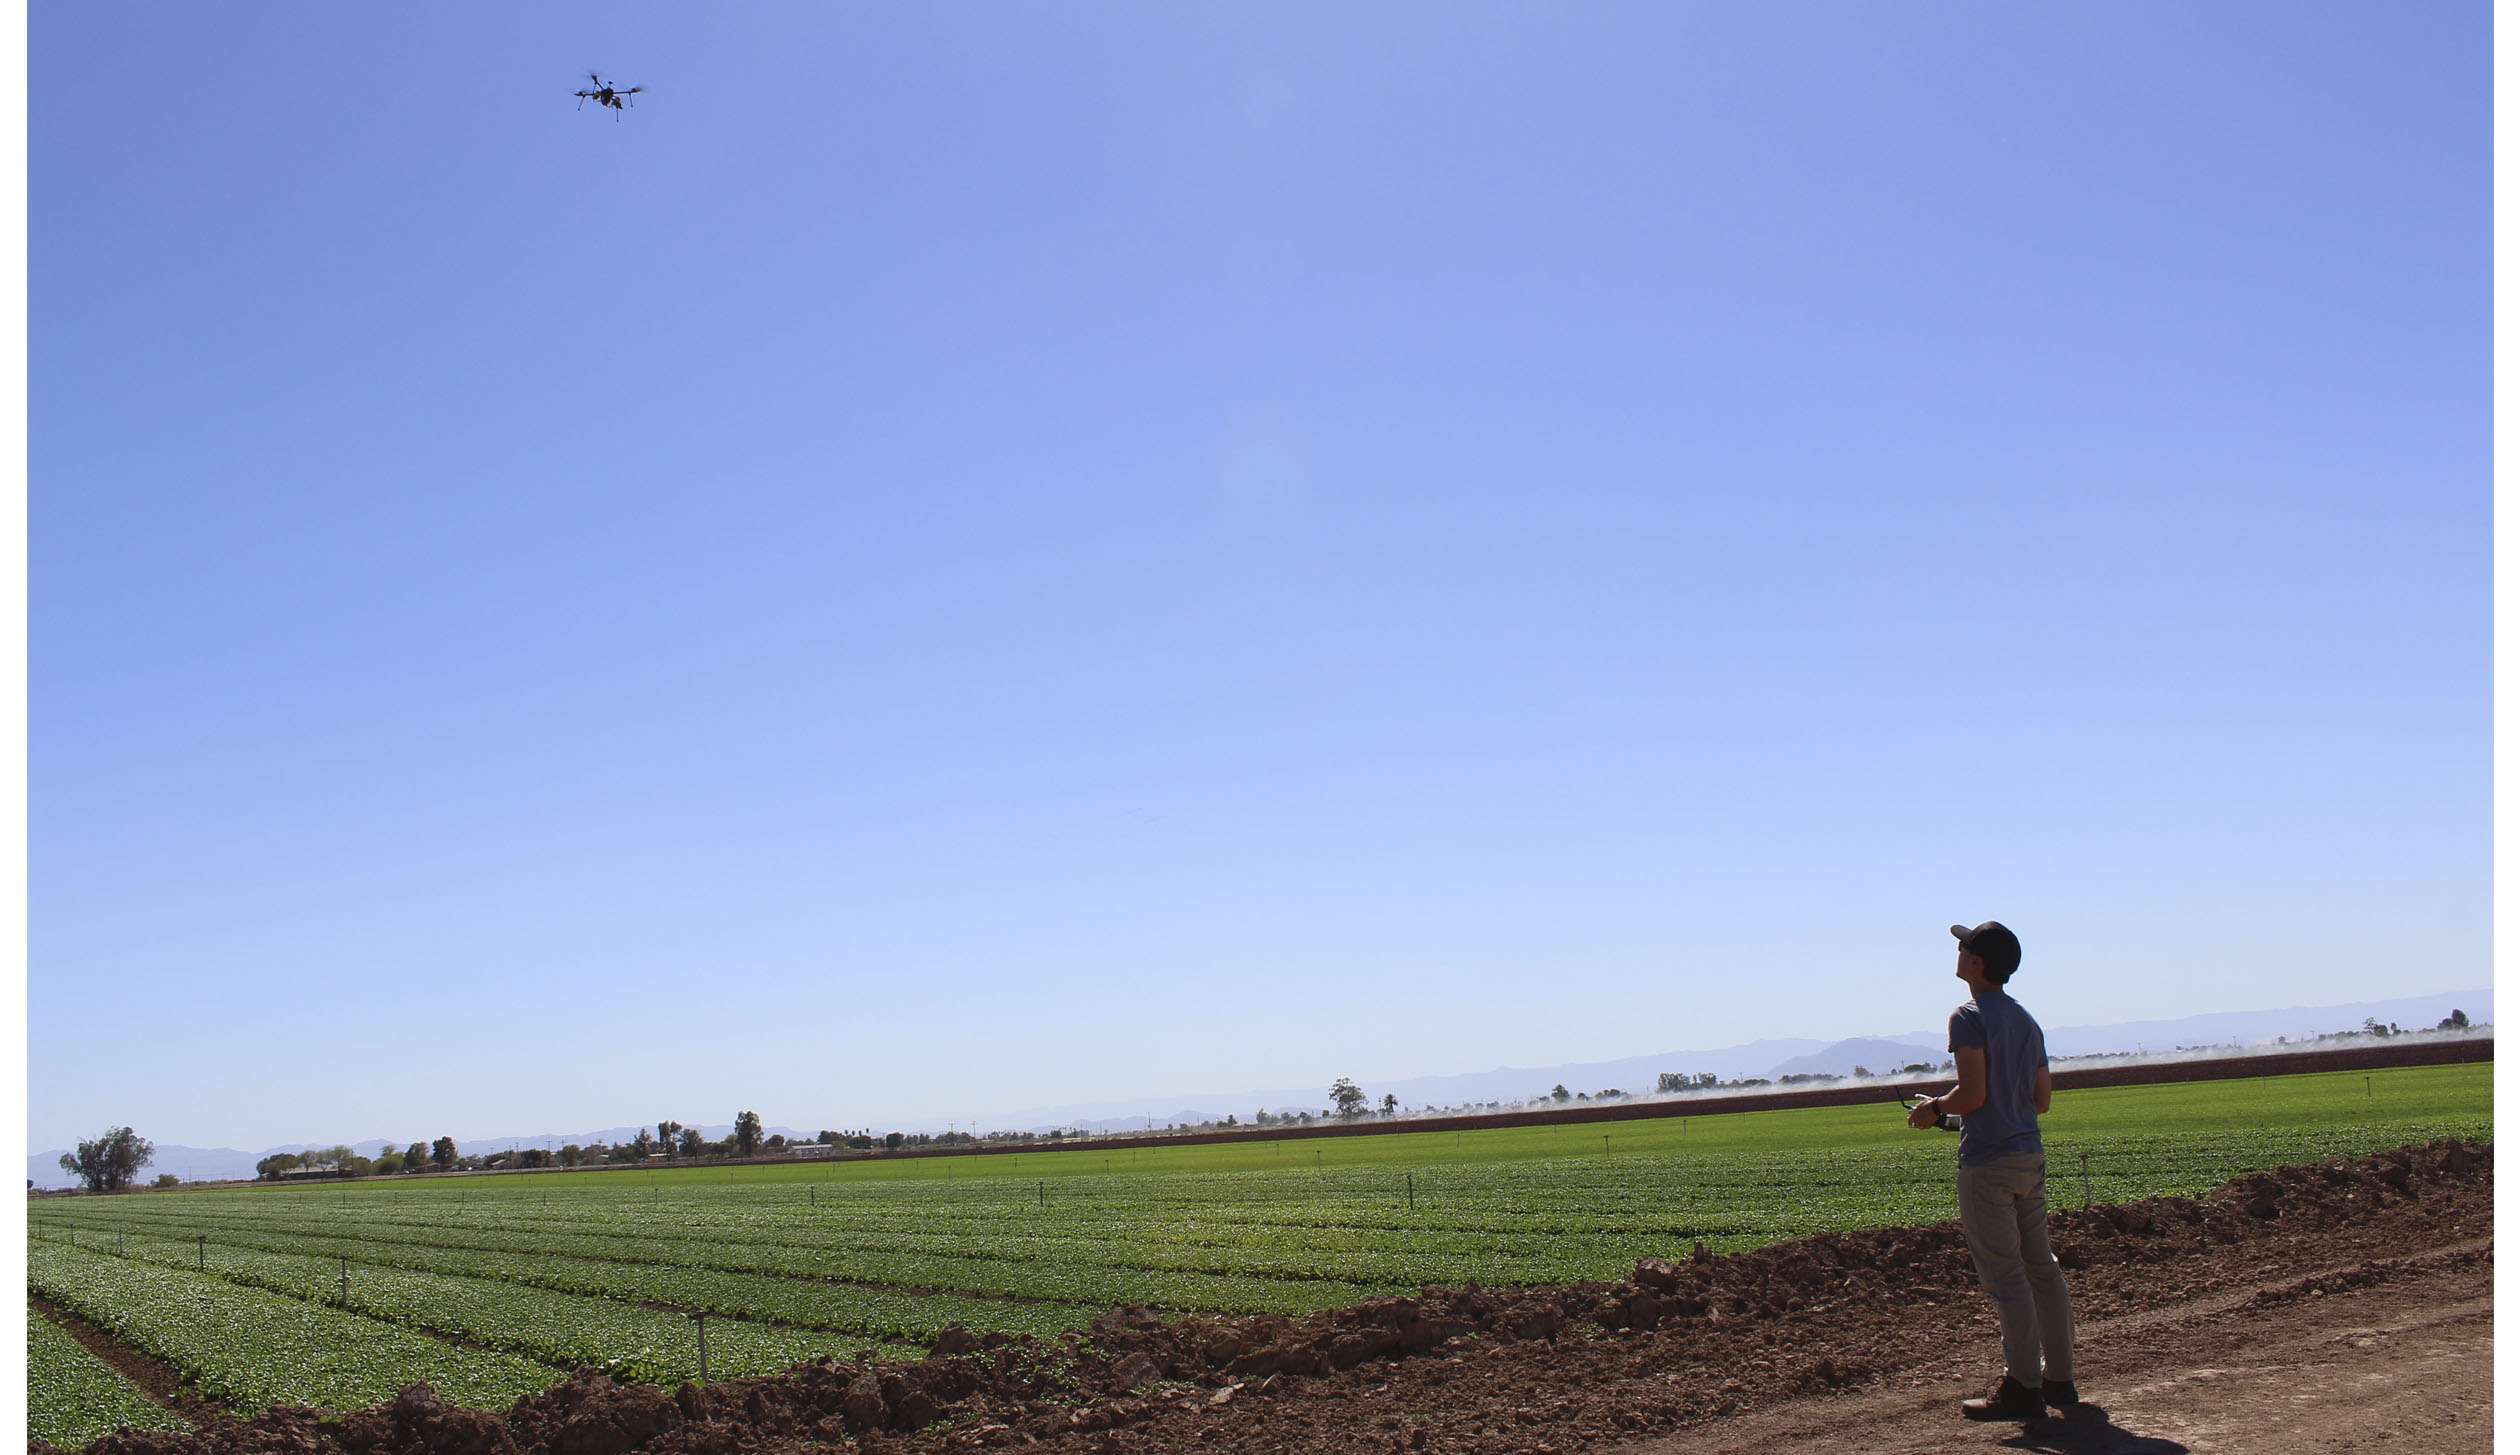 A drone with Slant Range sensors gives metrics to impove crop health.